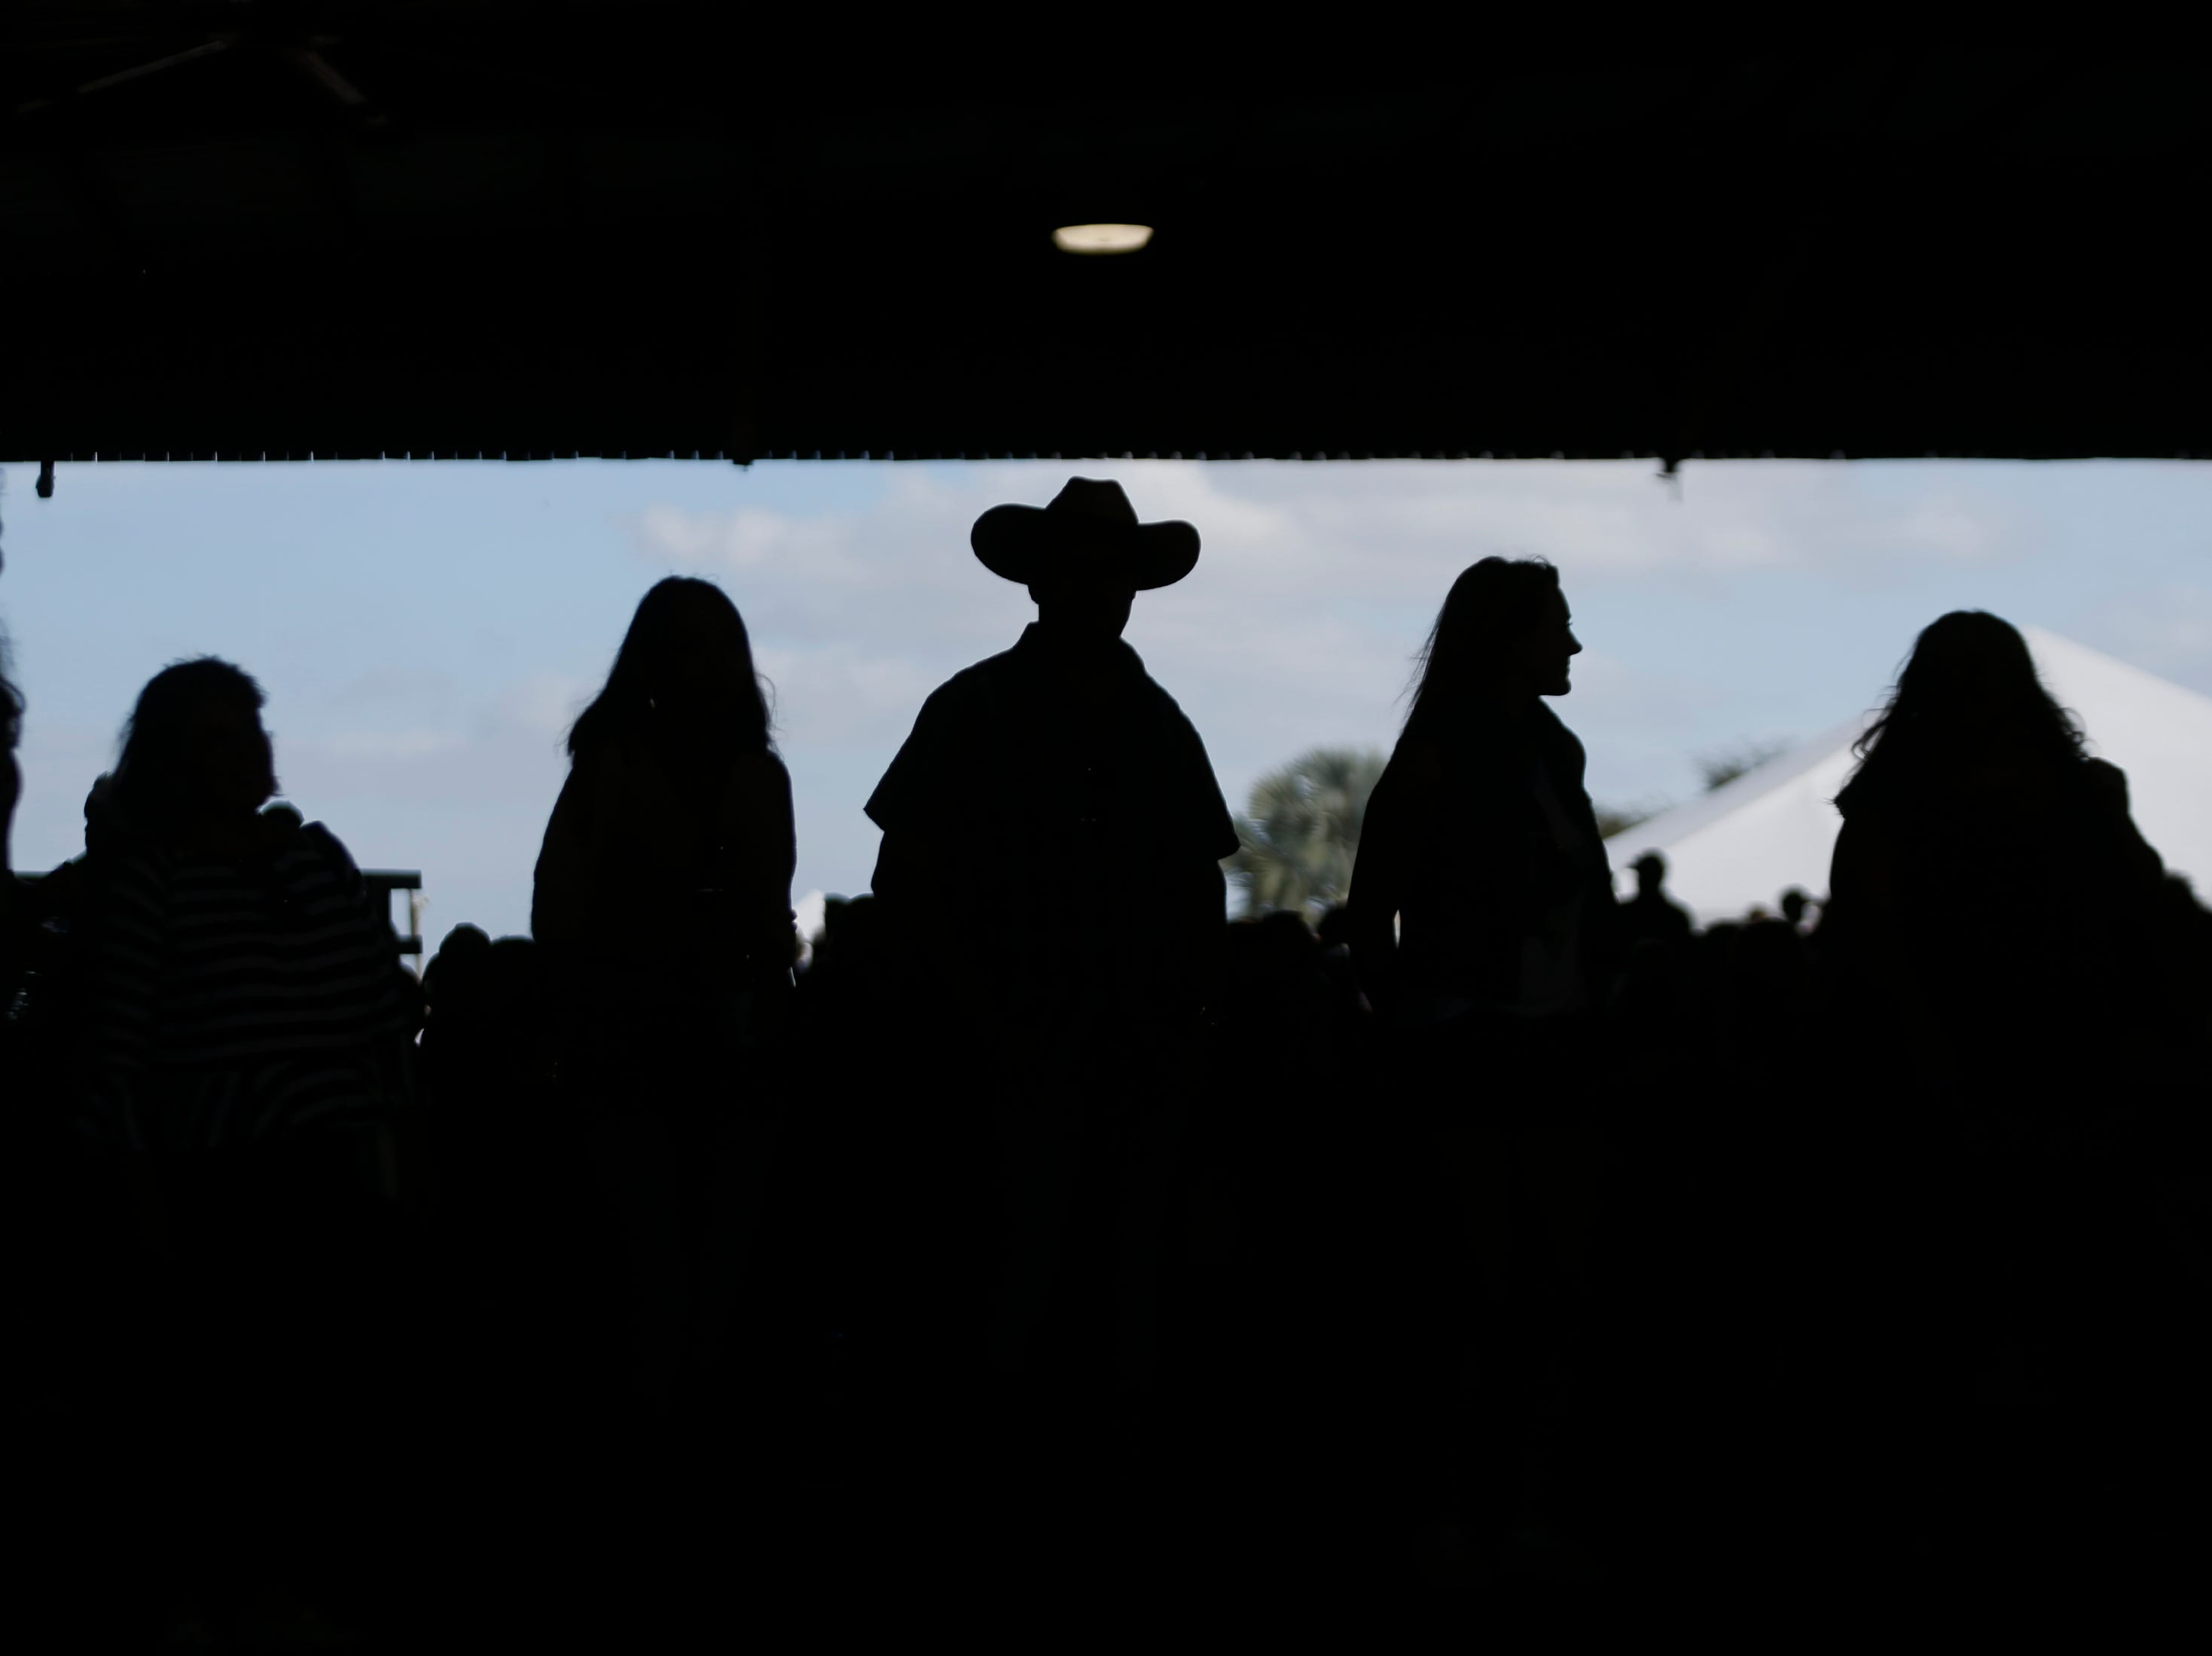 Festivalgoers enjoy food, drinks and live entertainment during the 7th Annual Big Swamp Smoke Off & Craft Beer Festival on Saturday, Jan. 5, 2019, at the Collier County Fairgrounds.